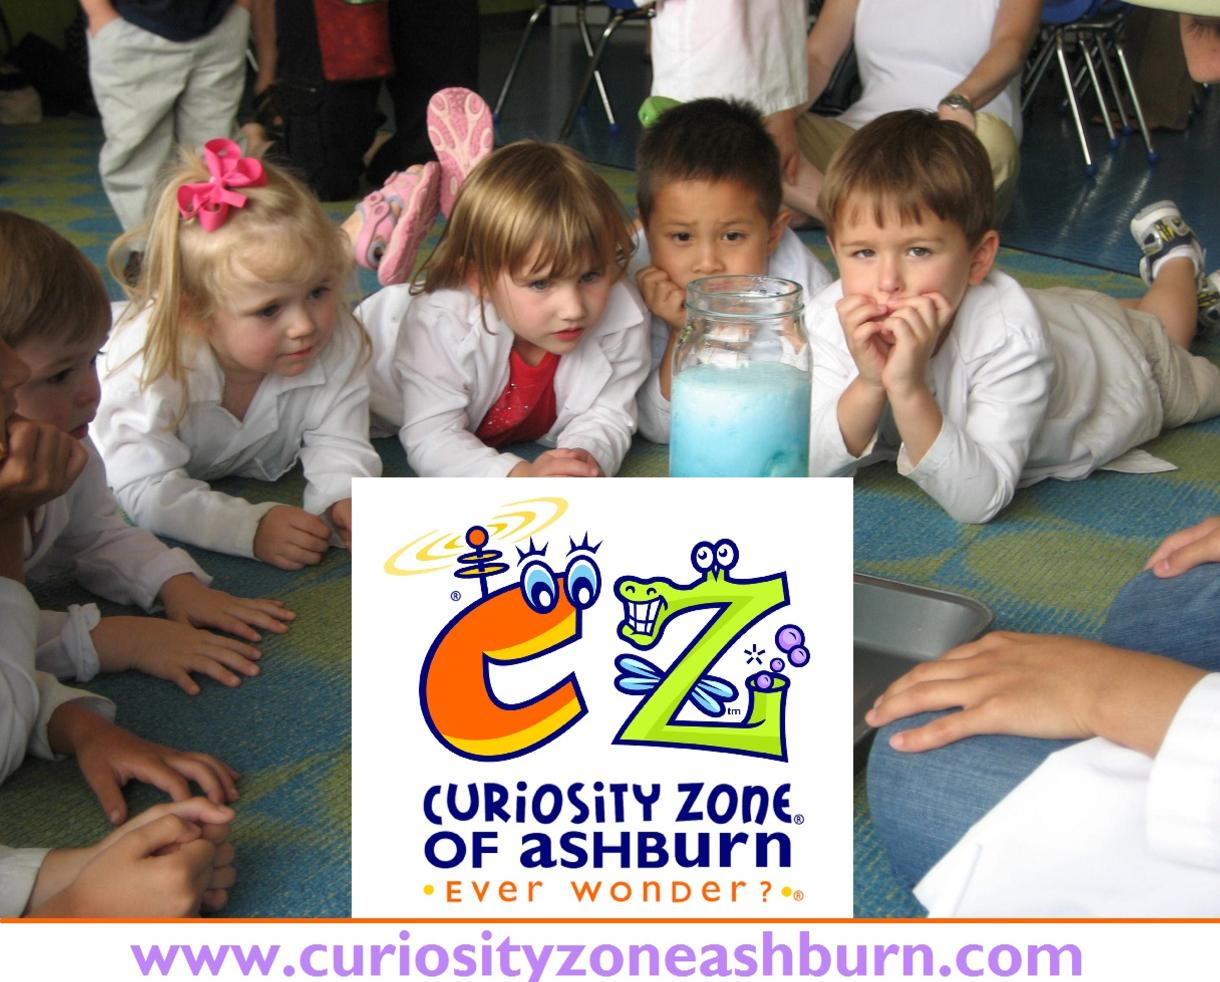 $179 for Curiosity Zone Science, Engineering & Minecraft Classes for Ages 3-12 in Ashburn ($229 Value - 30% Off